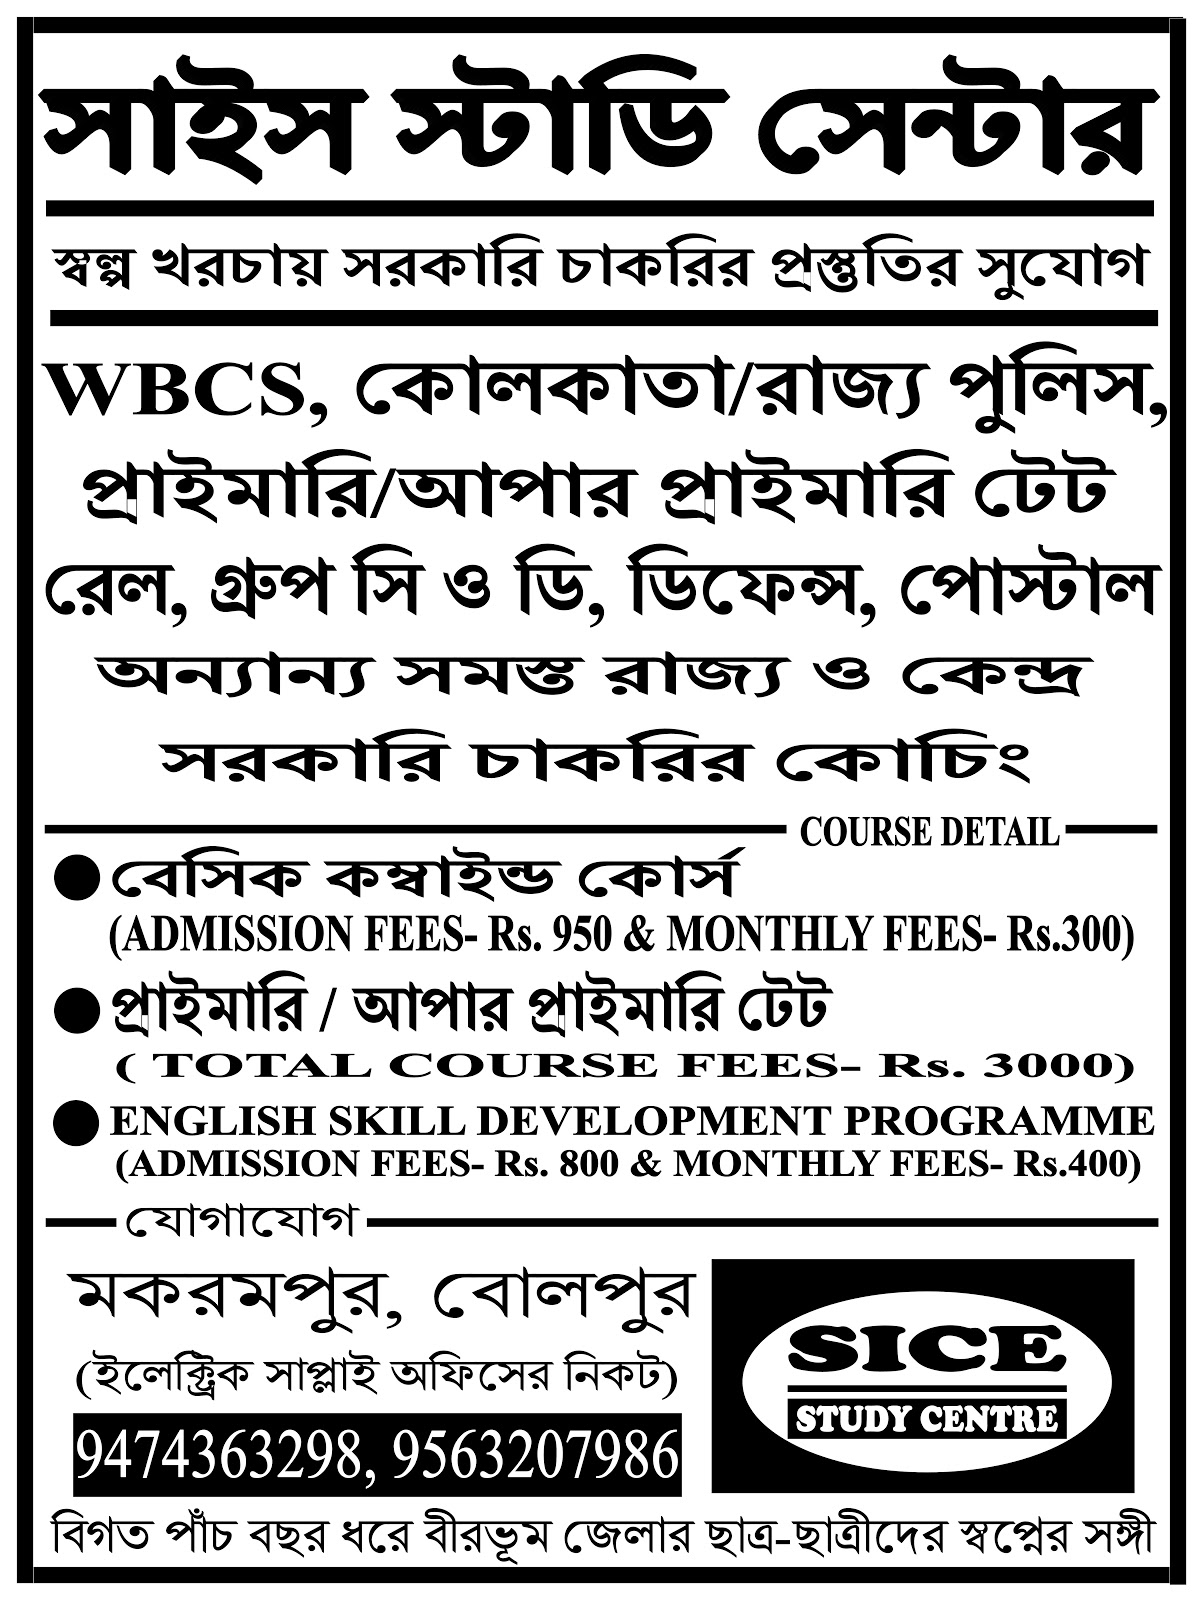 SICE STUDY CENTRE: Coaching for WBCS, POSTAL, ALL GROUP D